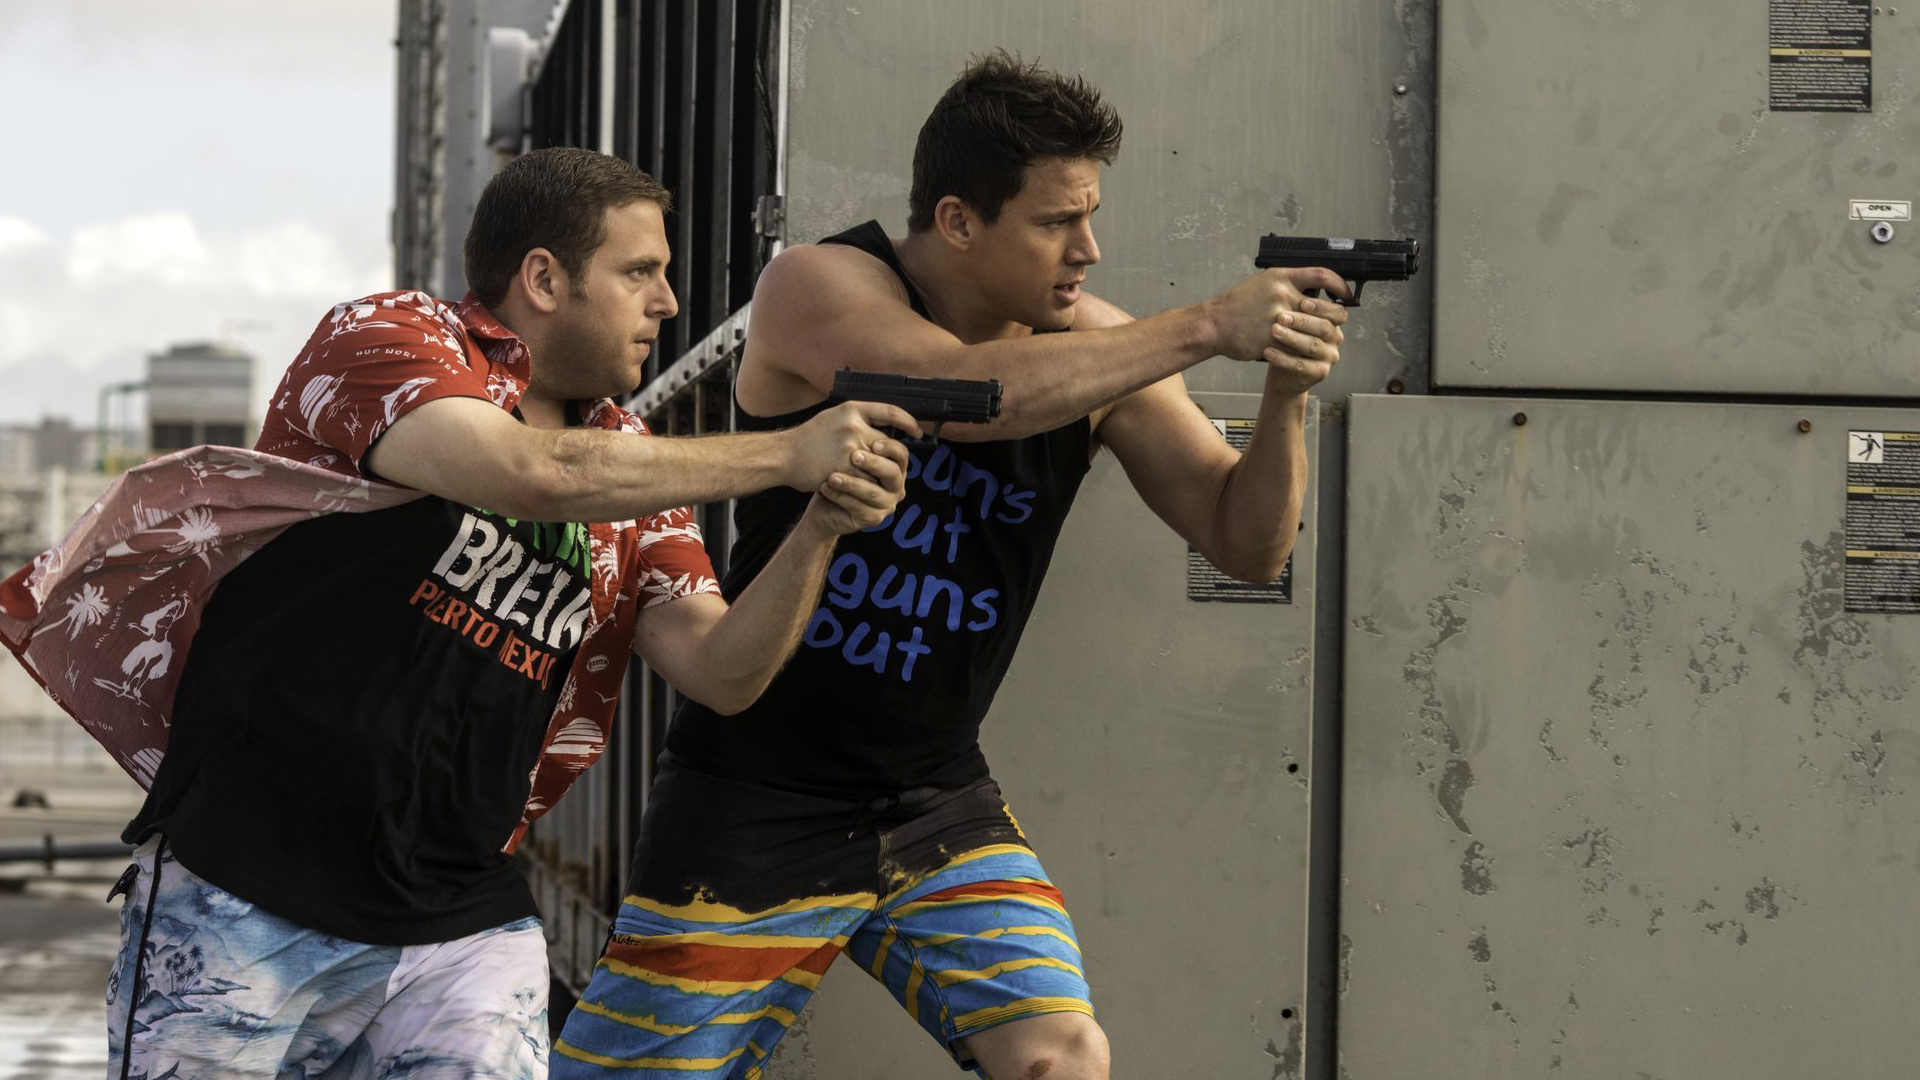 22 Jump Street 1920x1080 Wallpaper HD